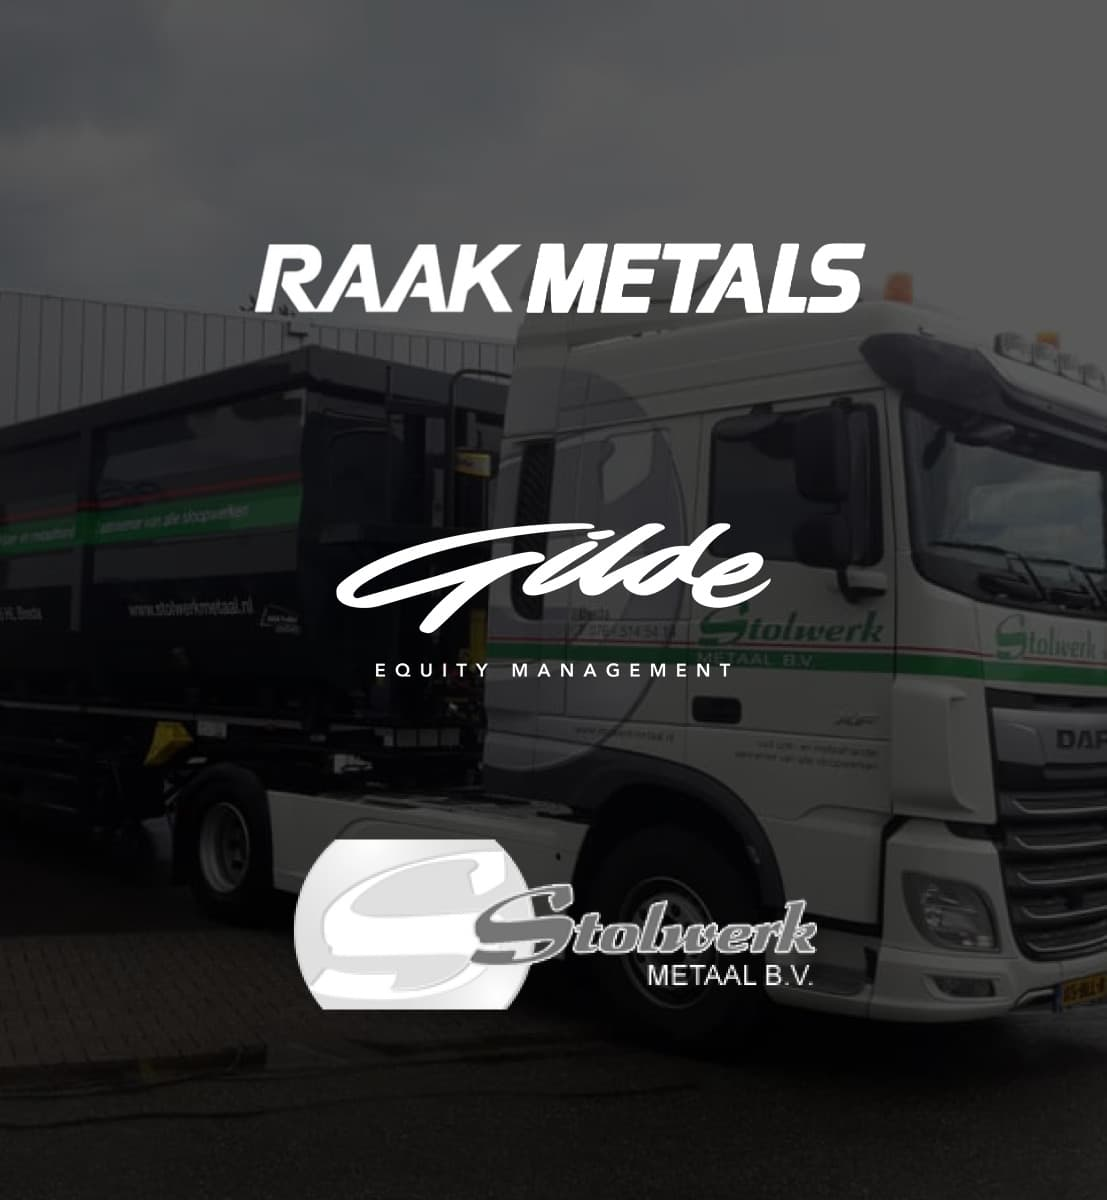 Business services, Metal Recycling